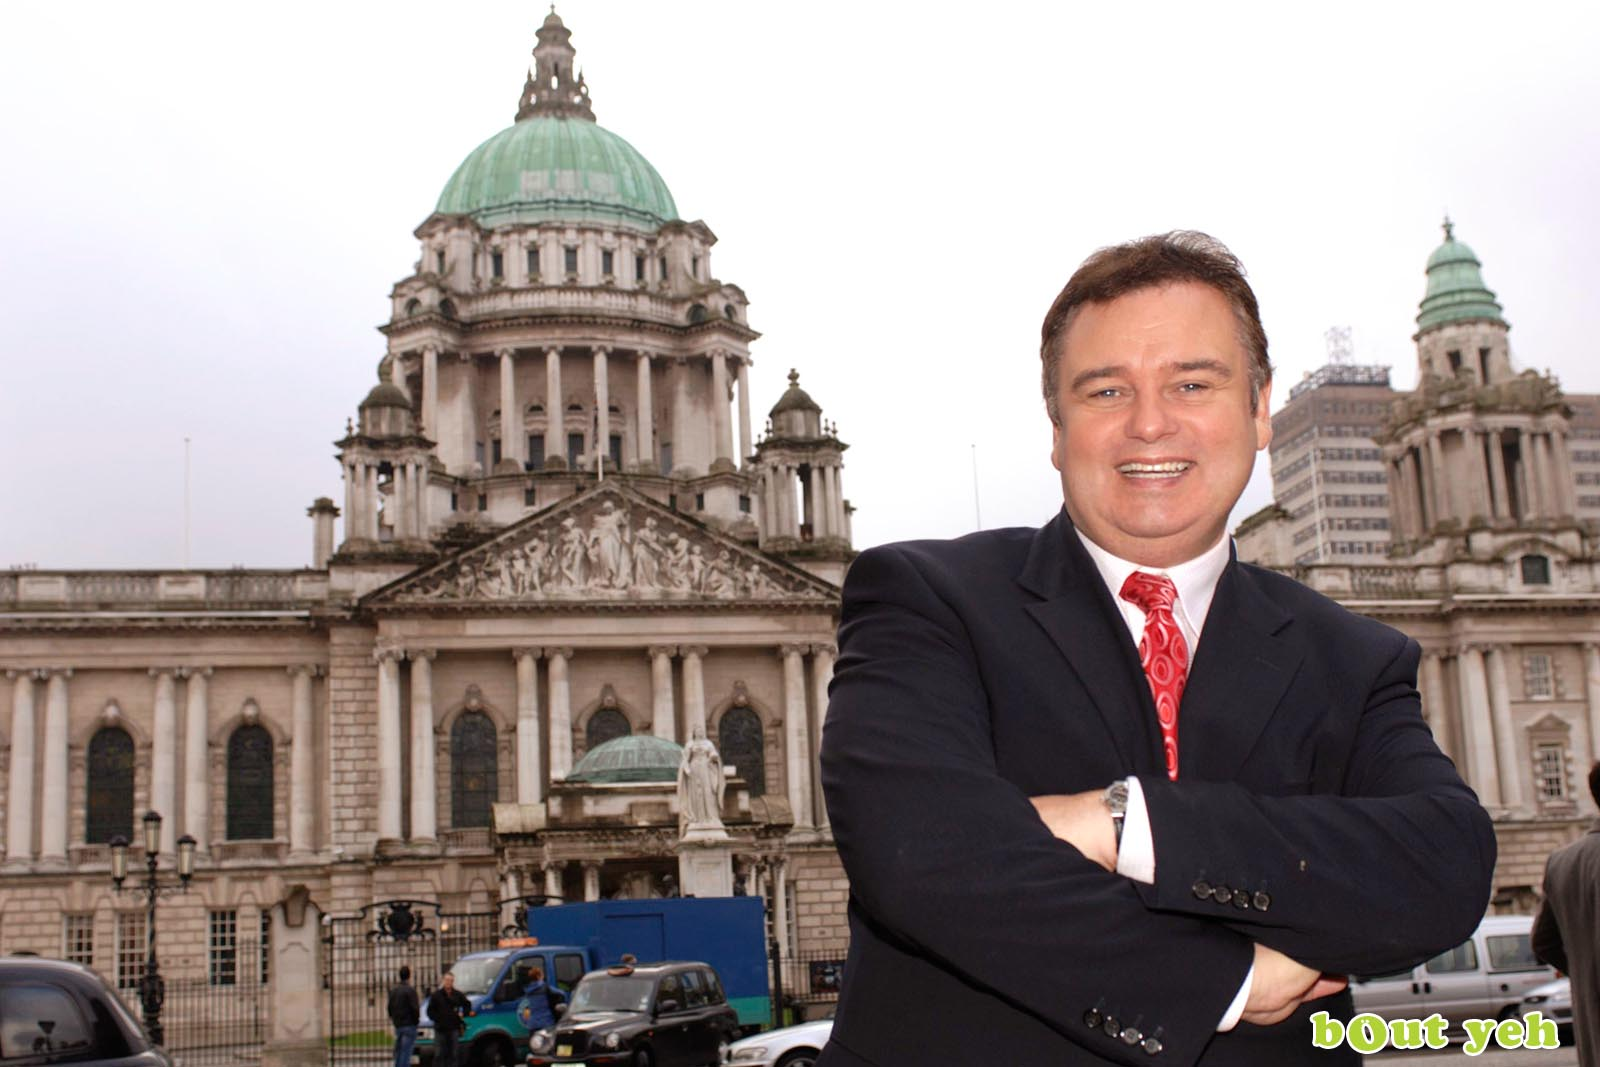 PR photographers Belfast portfolio photo 6115 of celebrity Eamonn Holmes in Belfast - Bout Yeh photography and video production services Belfast, Northern Ireland